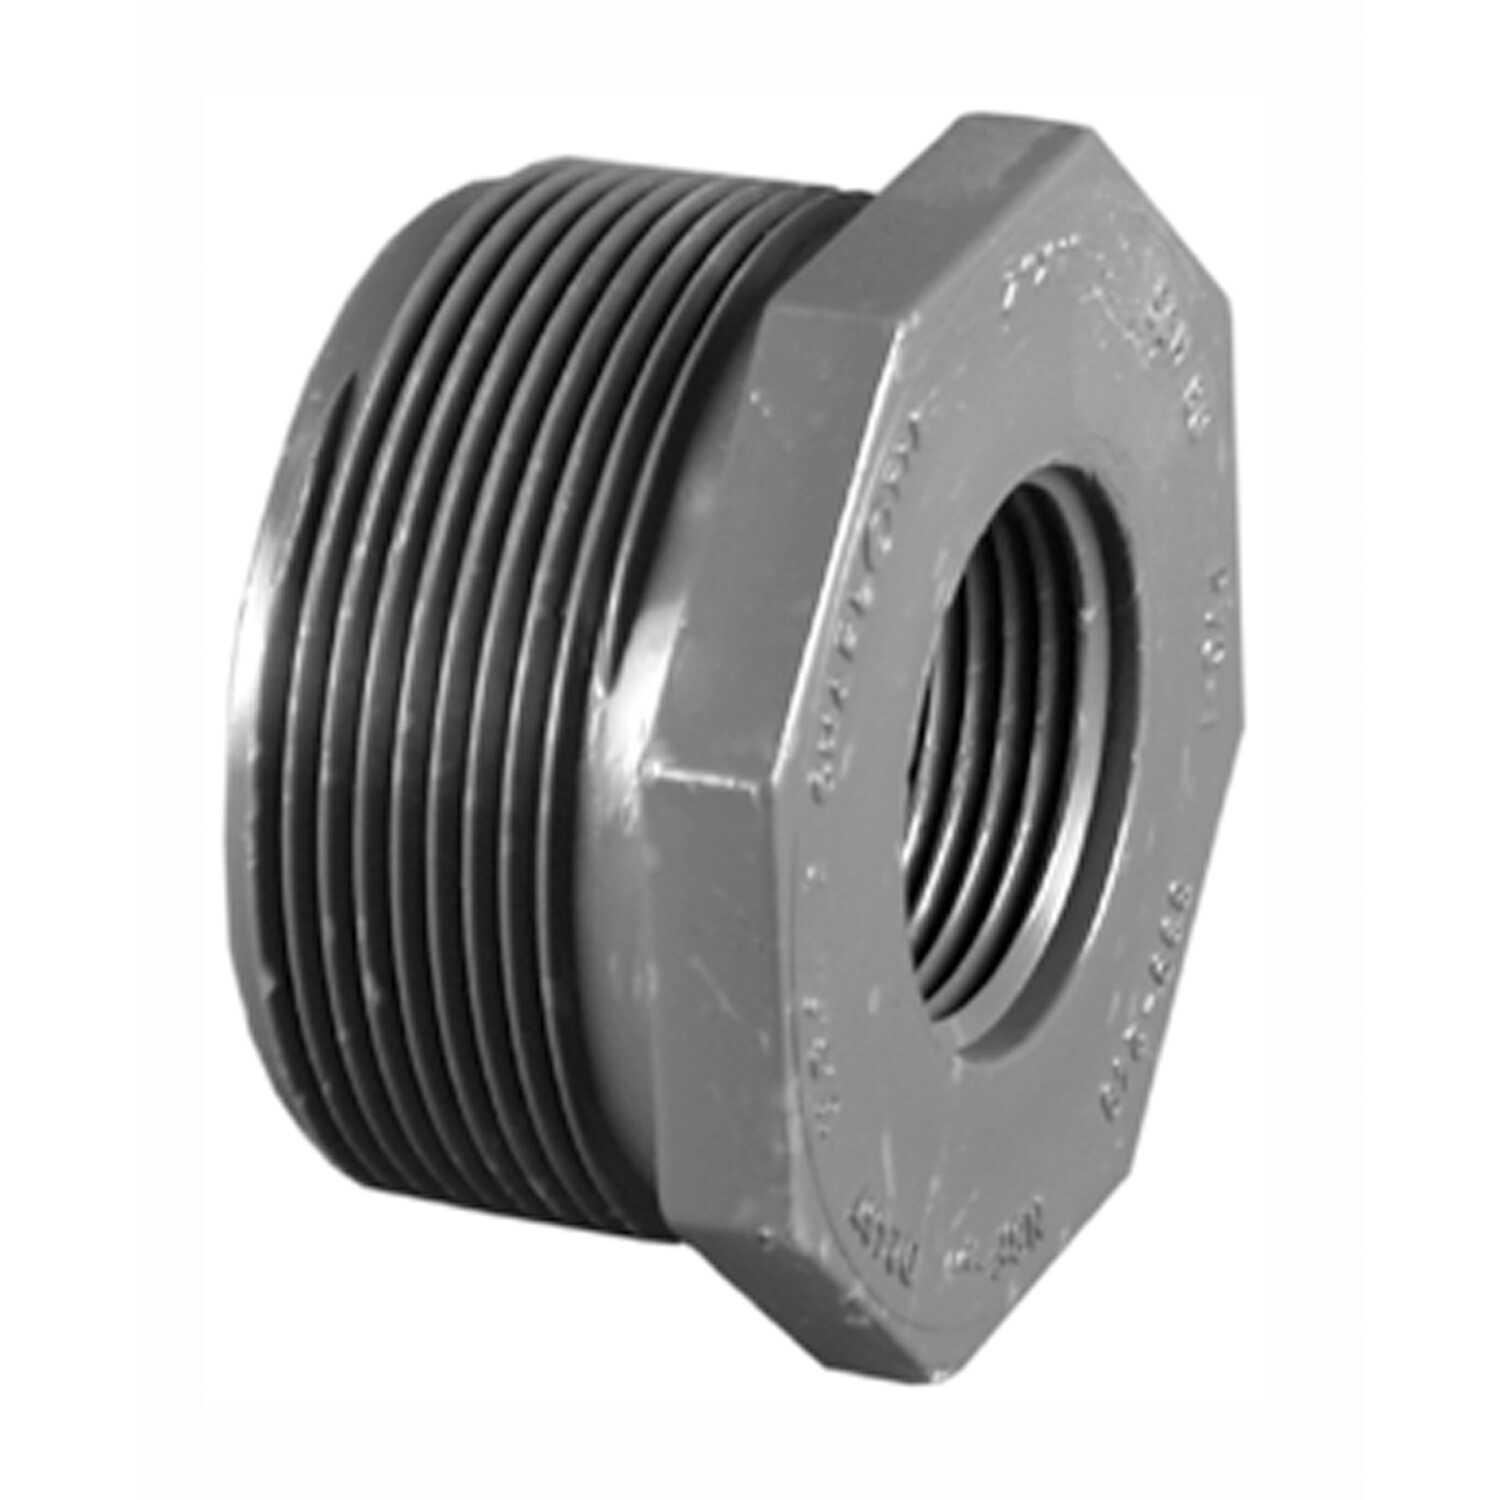 Charlotte Pipe  3/4 in. Dia. x 1/2 in. Dia. MPT To FPT  Schedule 80  PVC  Reducing Bushing